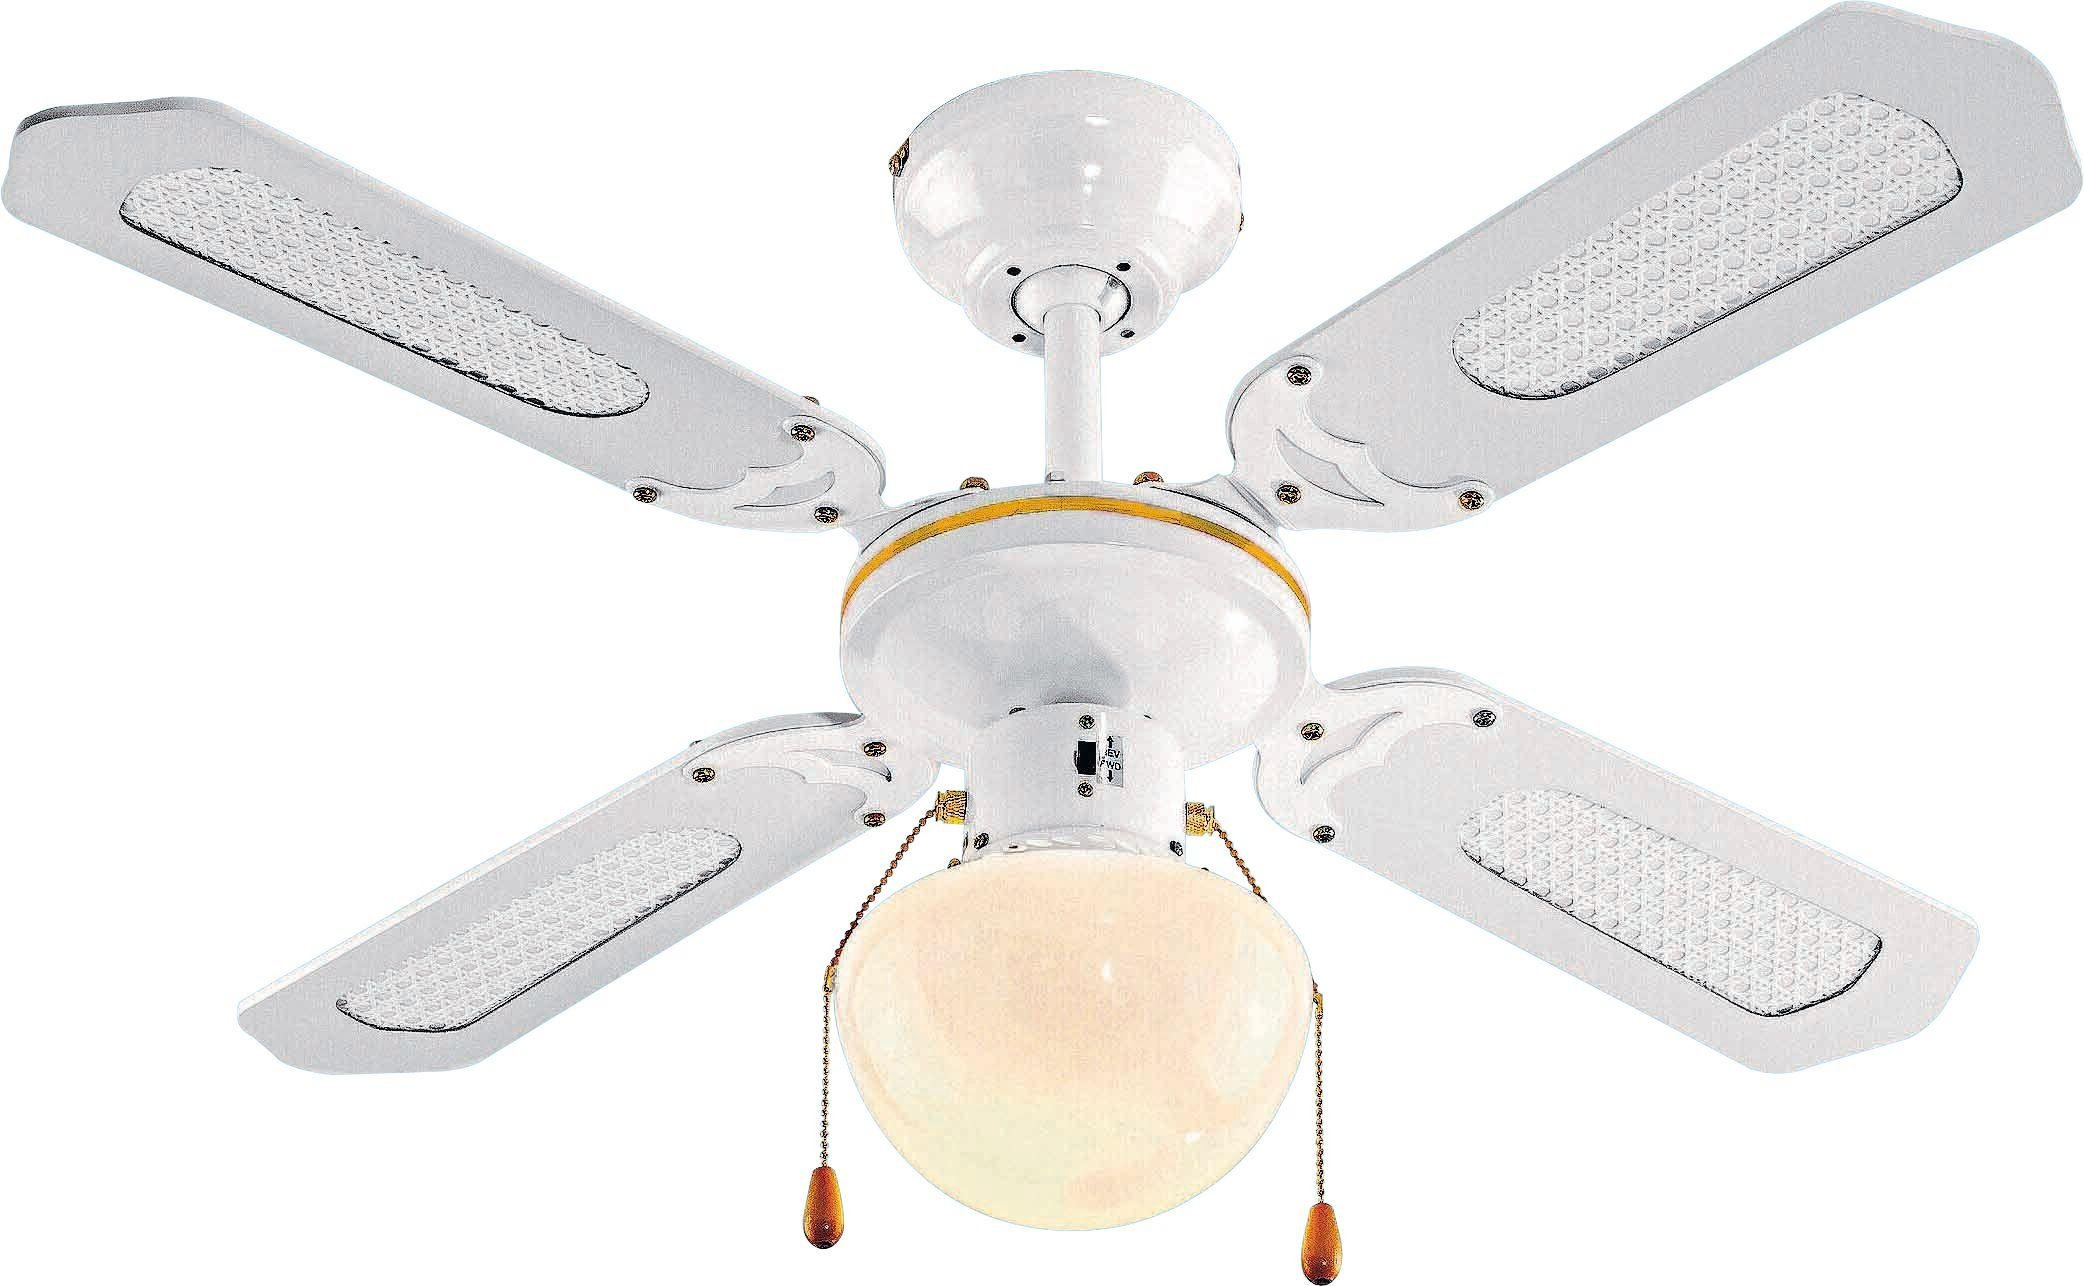 Home ceiling fan white